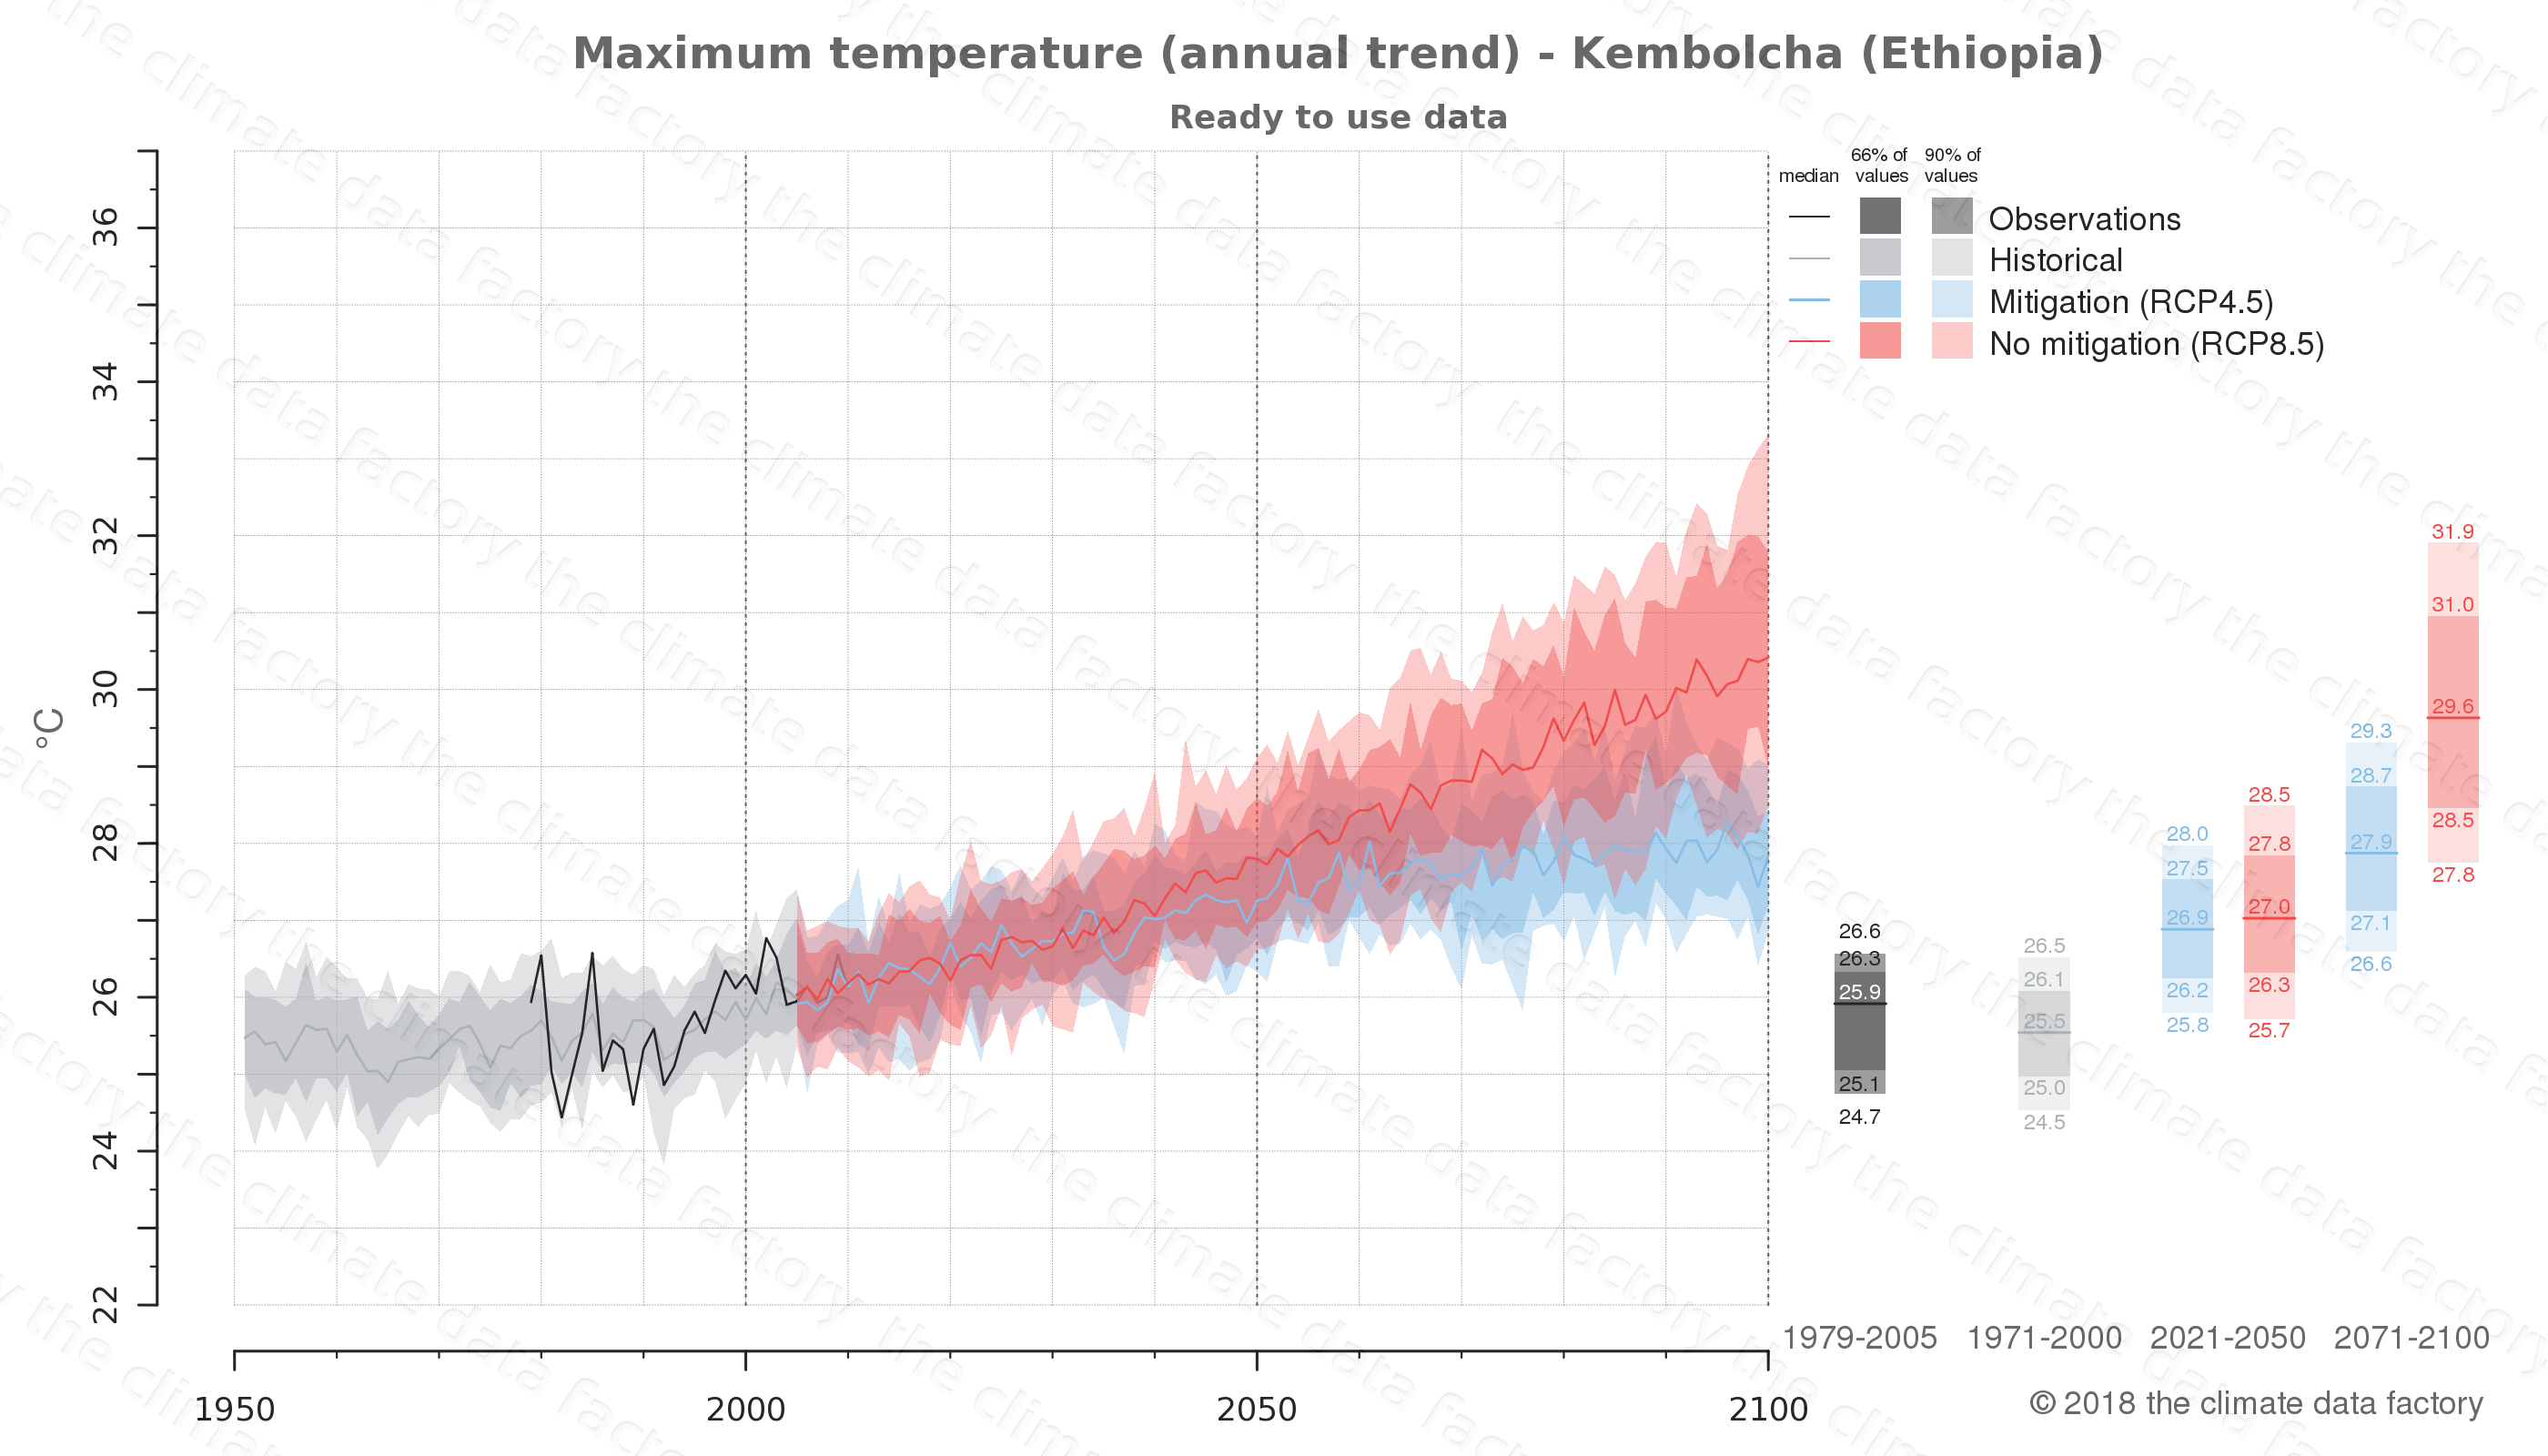 climate change data policy adaptation climate graph city data maximum-temperature kembolcha ethiopia